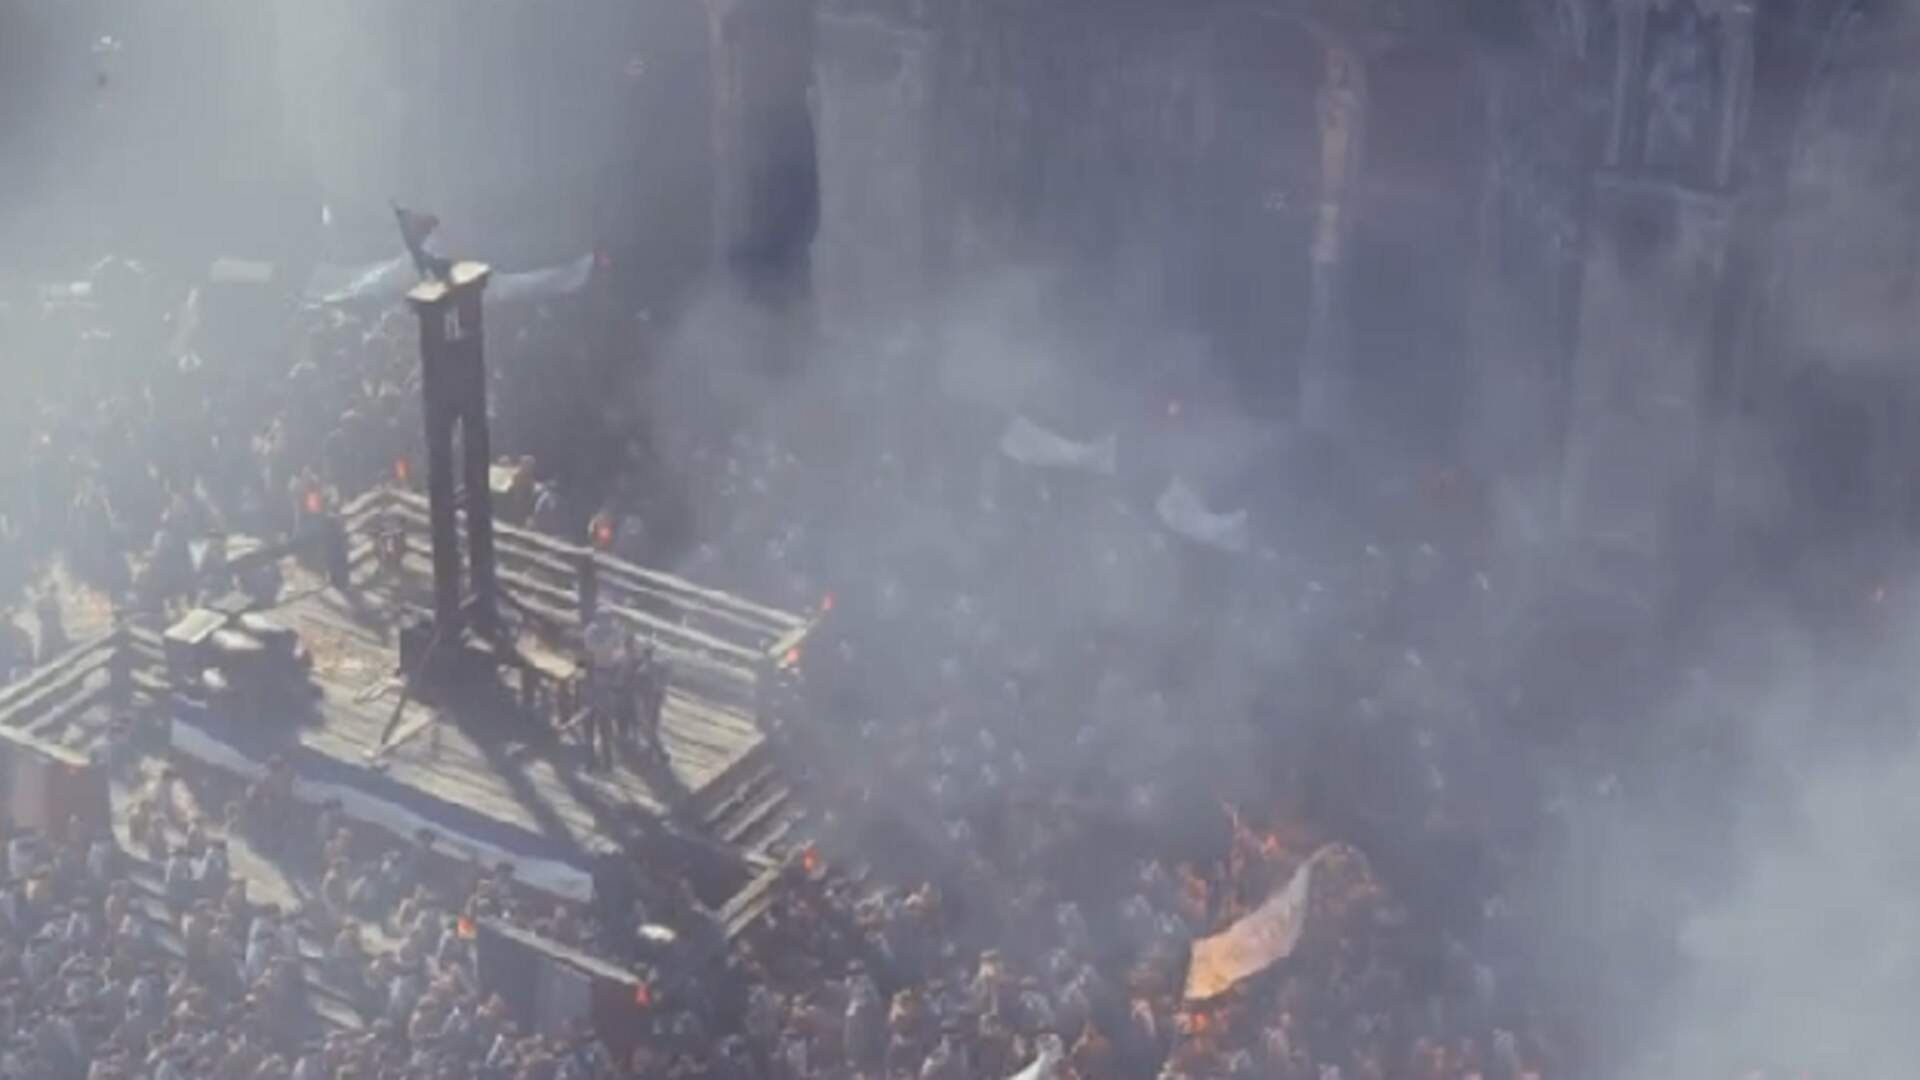 Assassin's Creed: Unity Confirmed for PS4, Xbox One, and PC